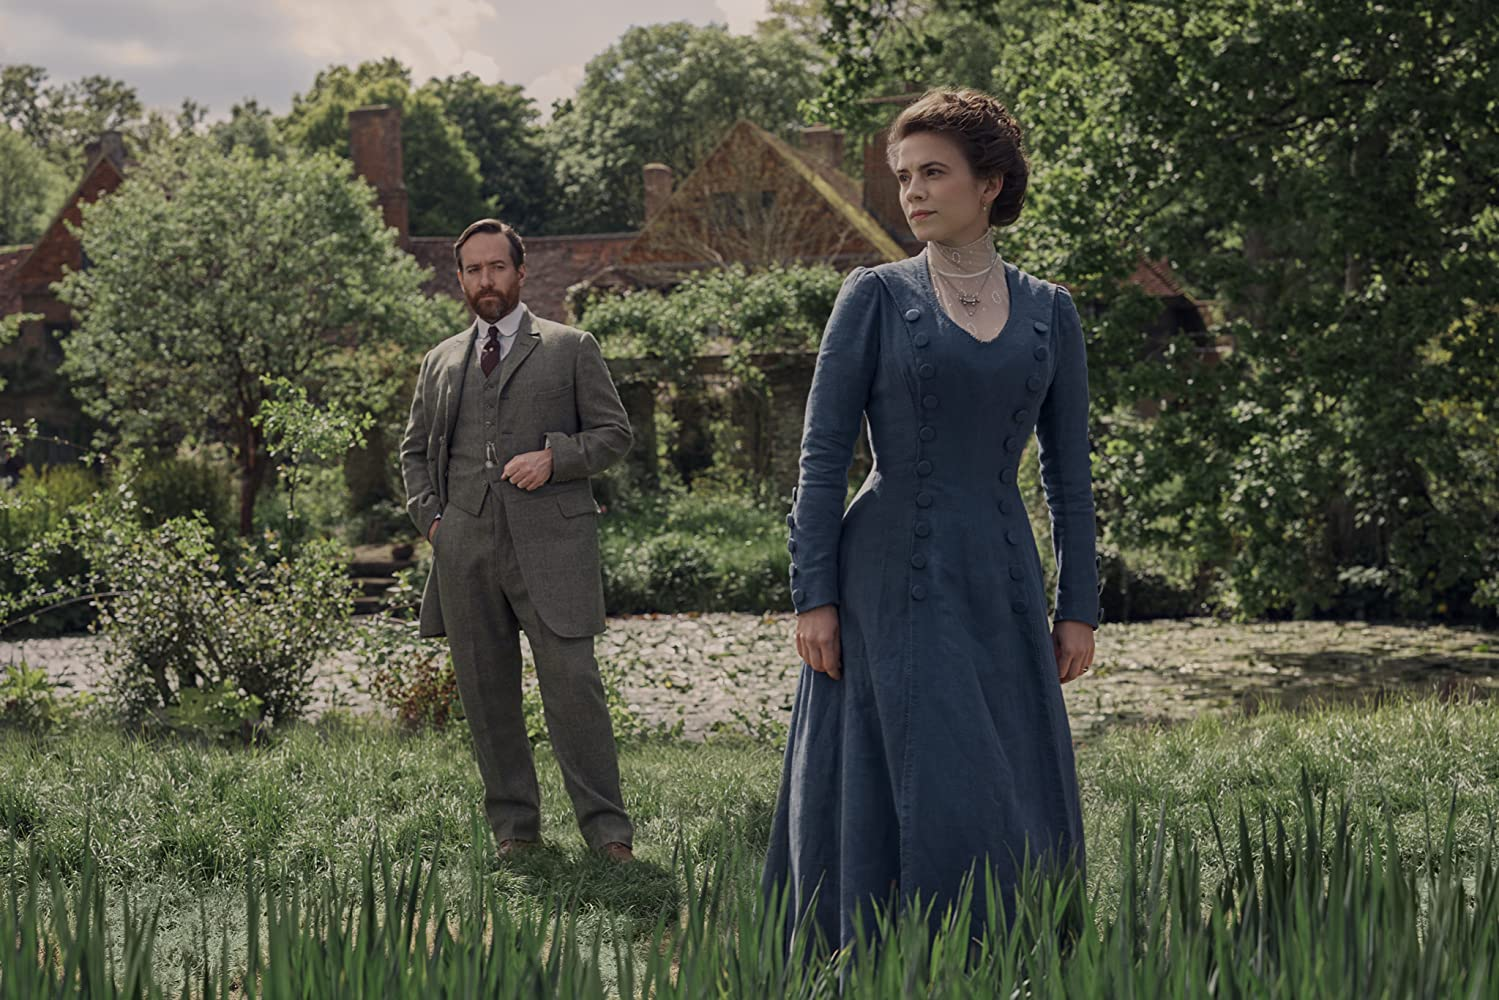 Matthew Macfadyen and Hayley Atwell in Howards End (2017)